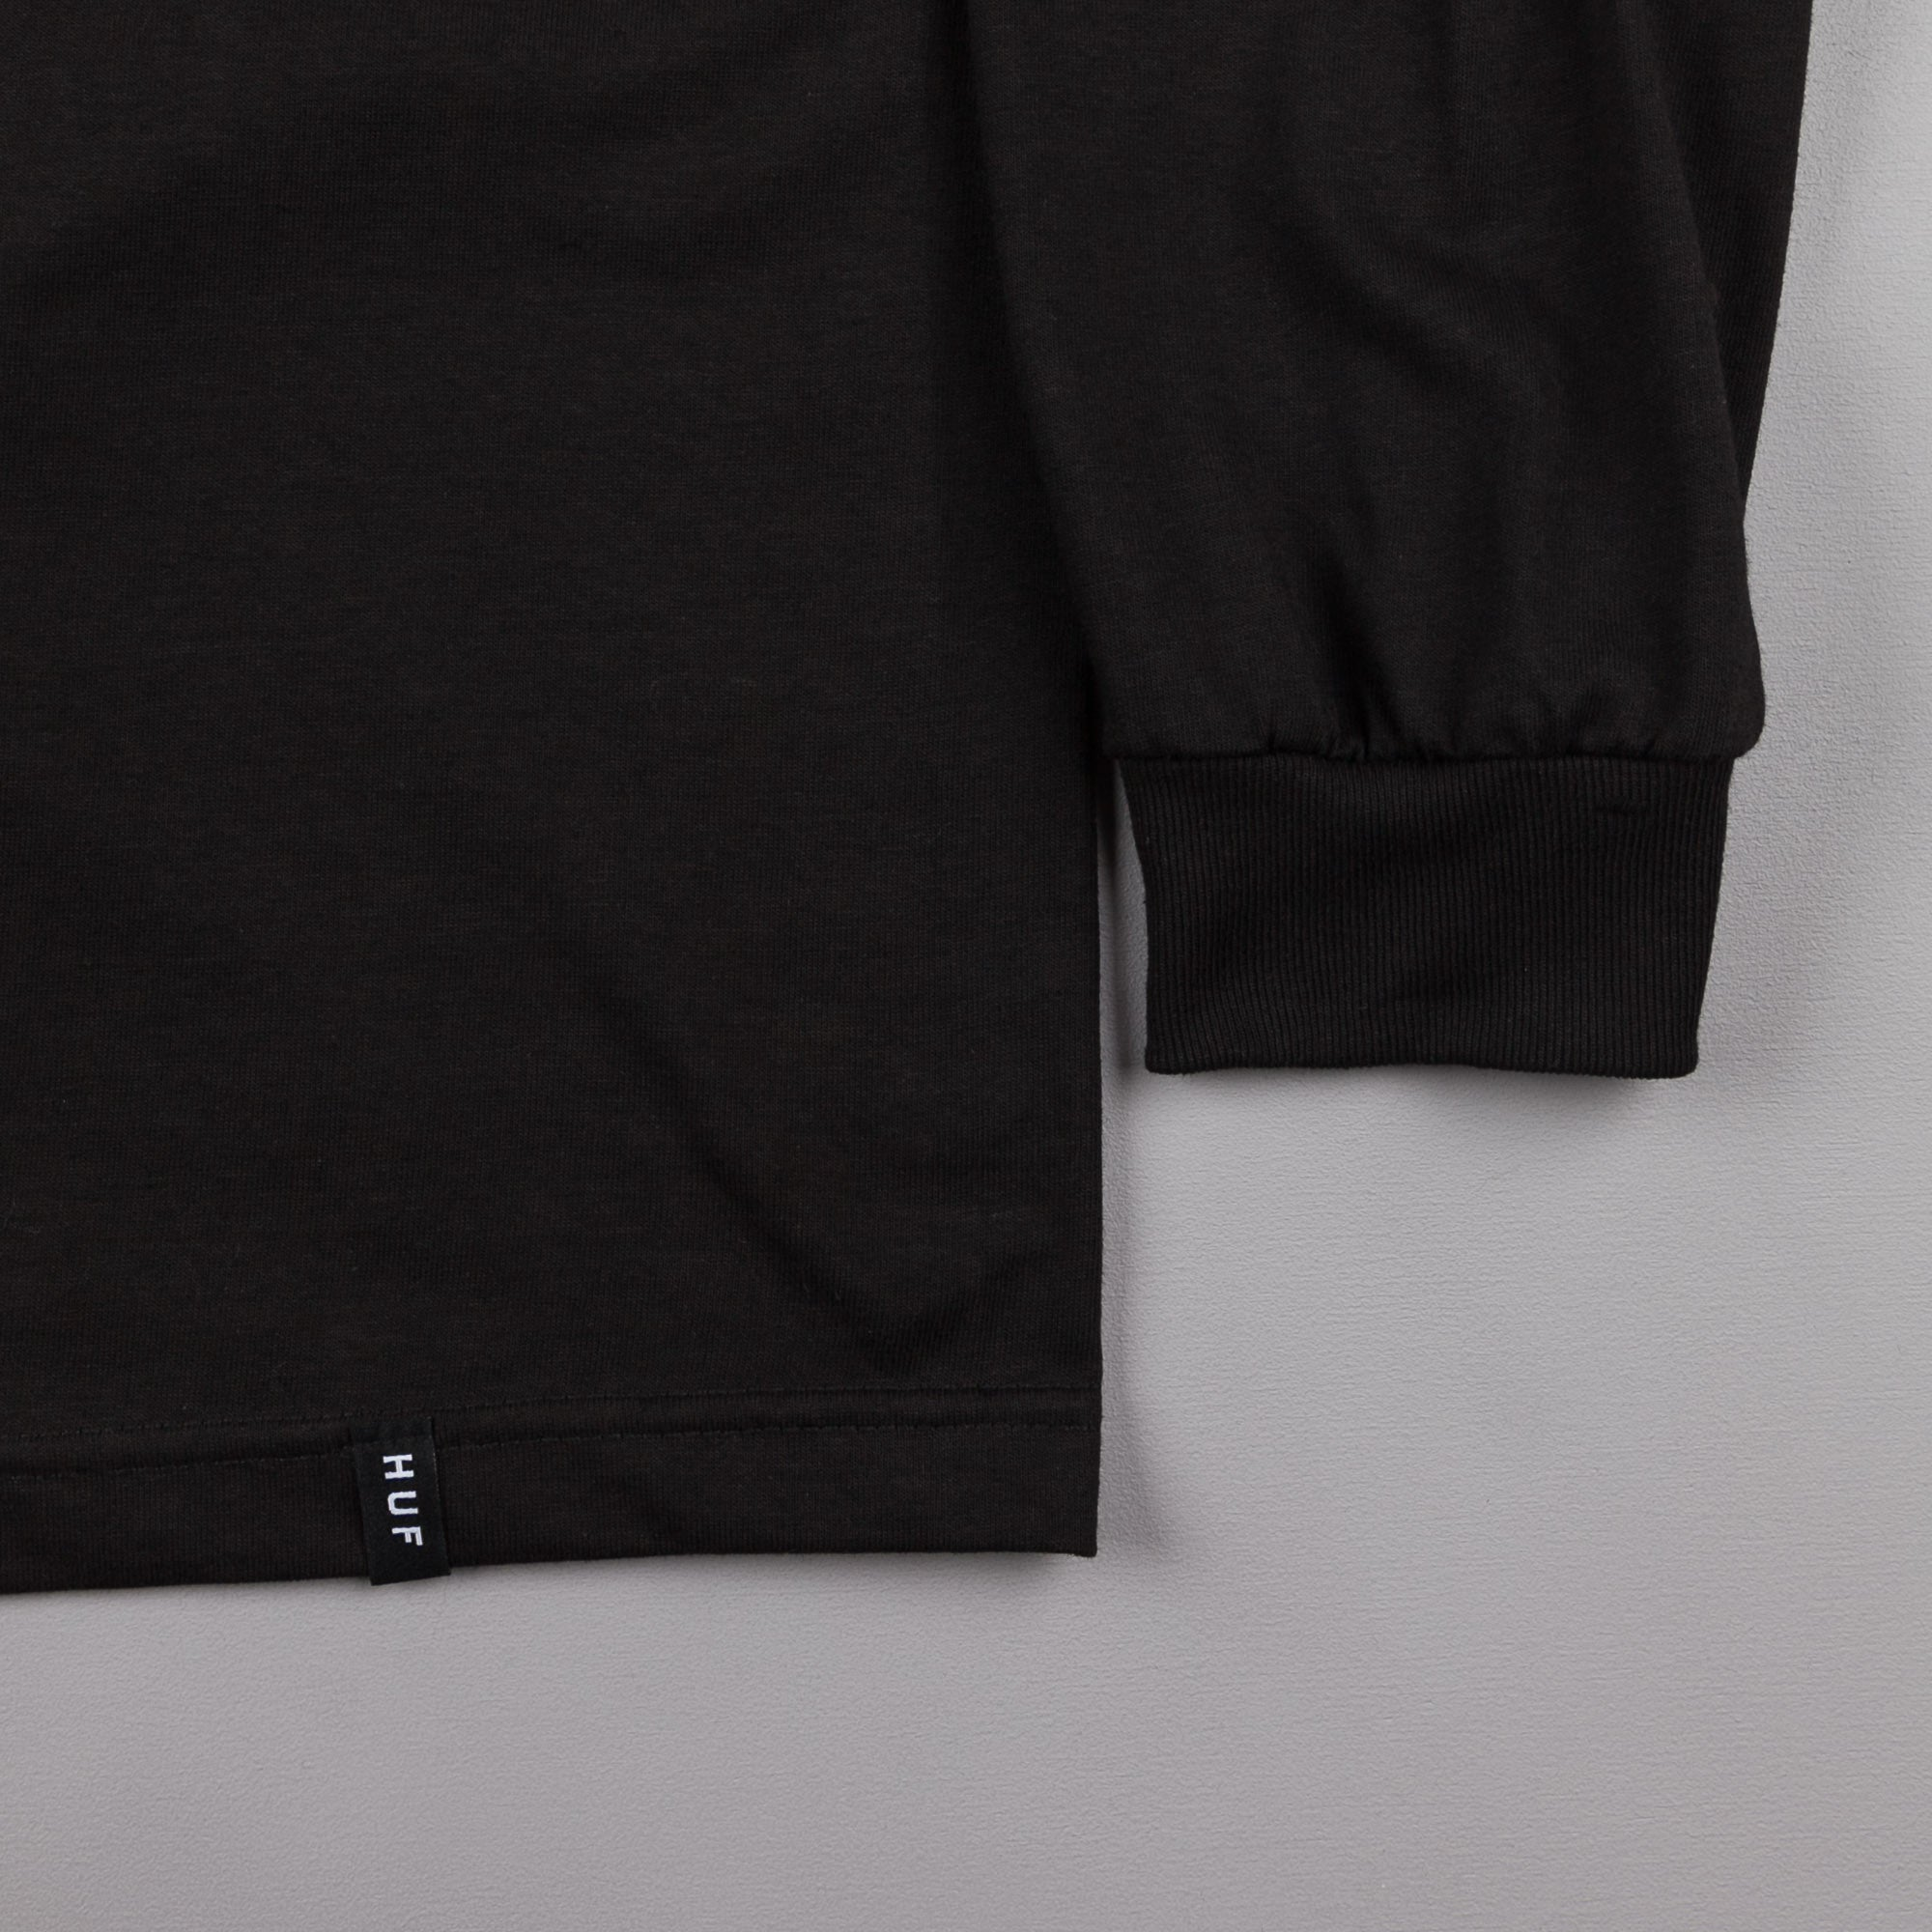 HUF x Thrasher TDS Long Sleeve T-Shirt - Black